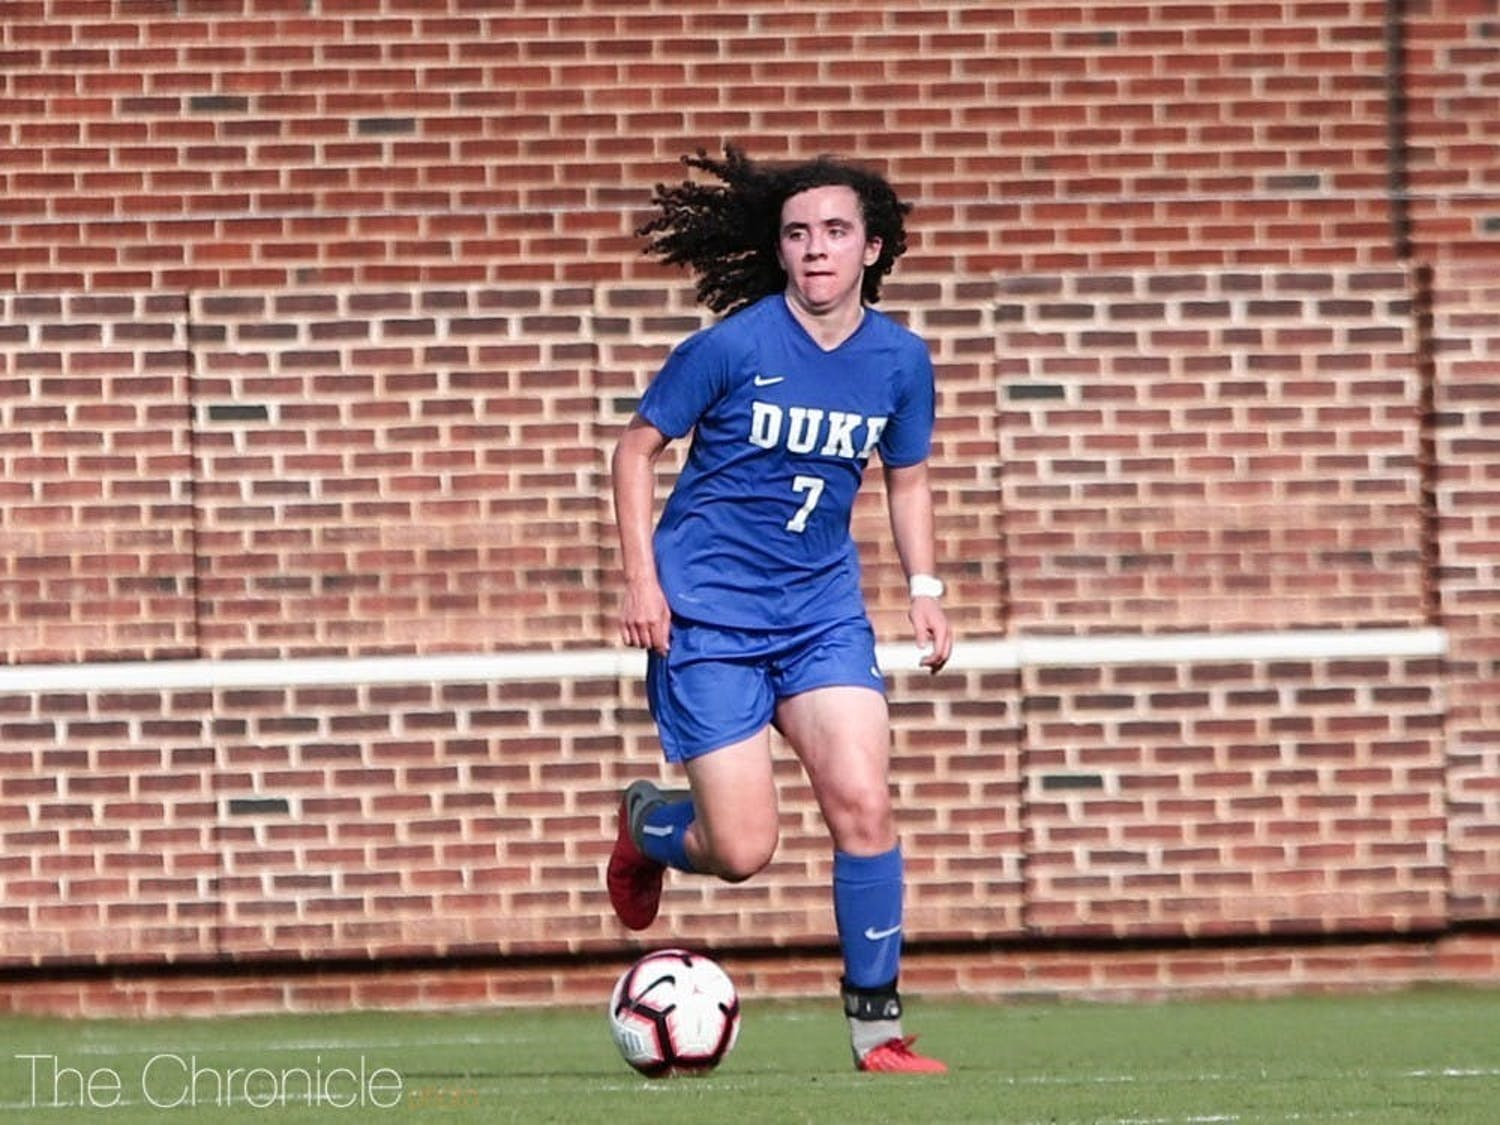 Sophomore midfielder Sophie Jones has been lauded as one of the top 10 players in the country.